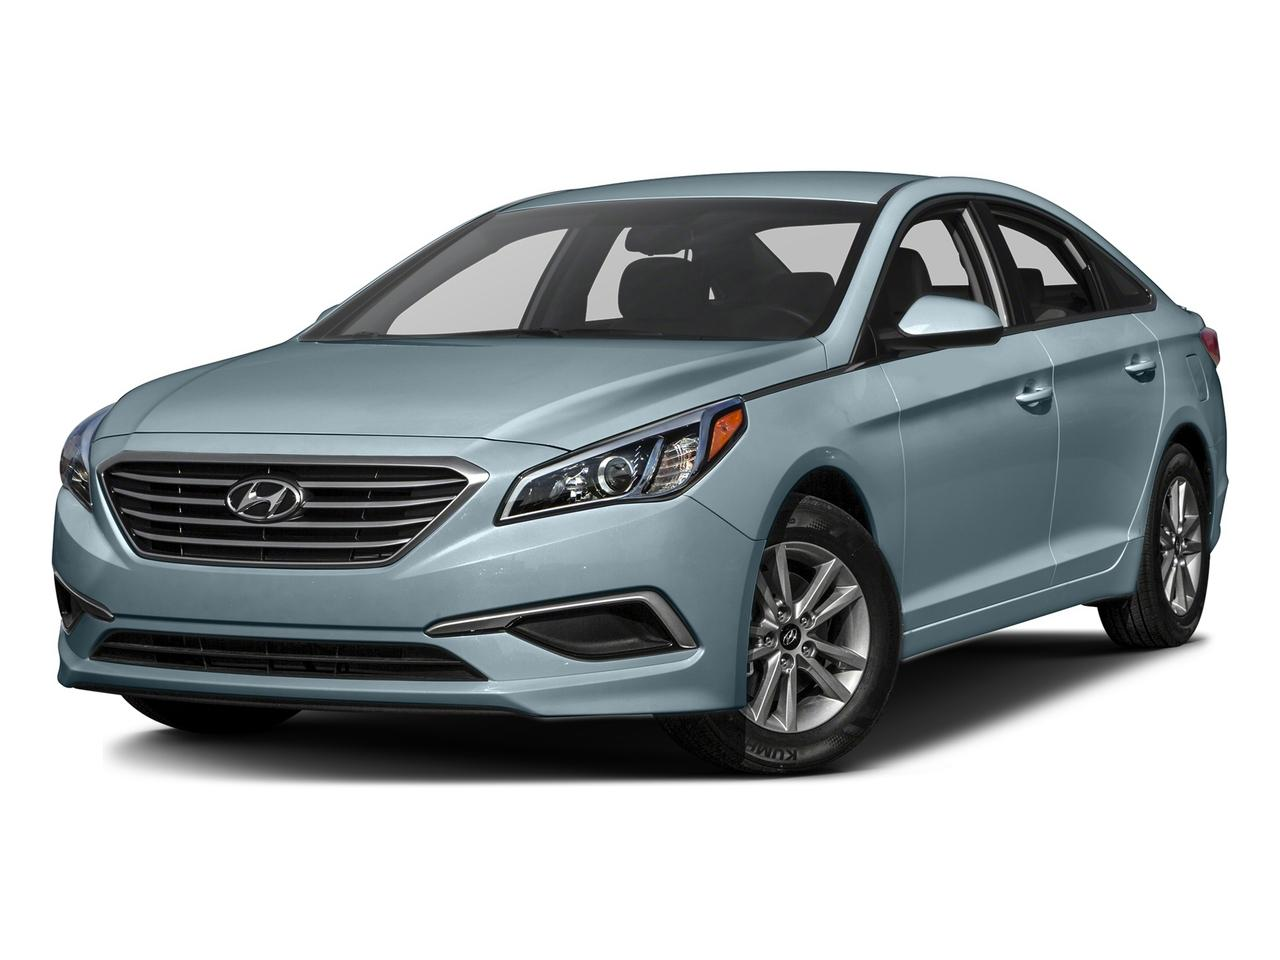 2016 Hyundai Sonata Vehicle Photo in Beaufort, SC 29906